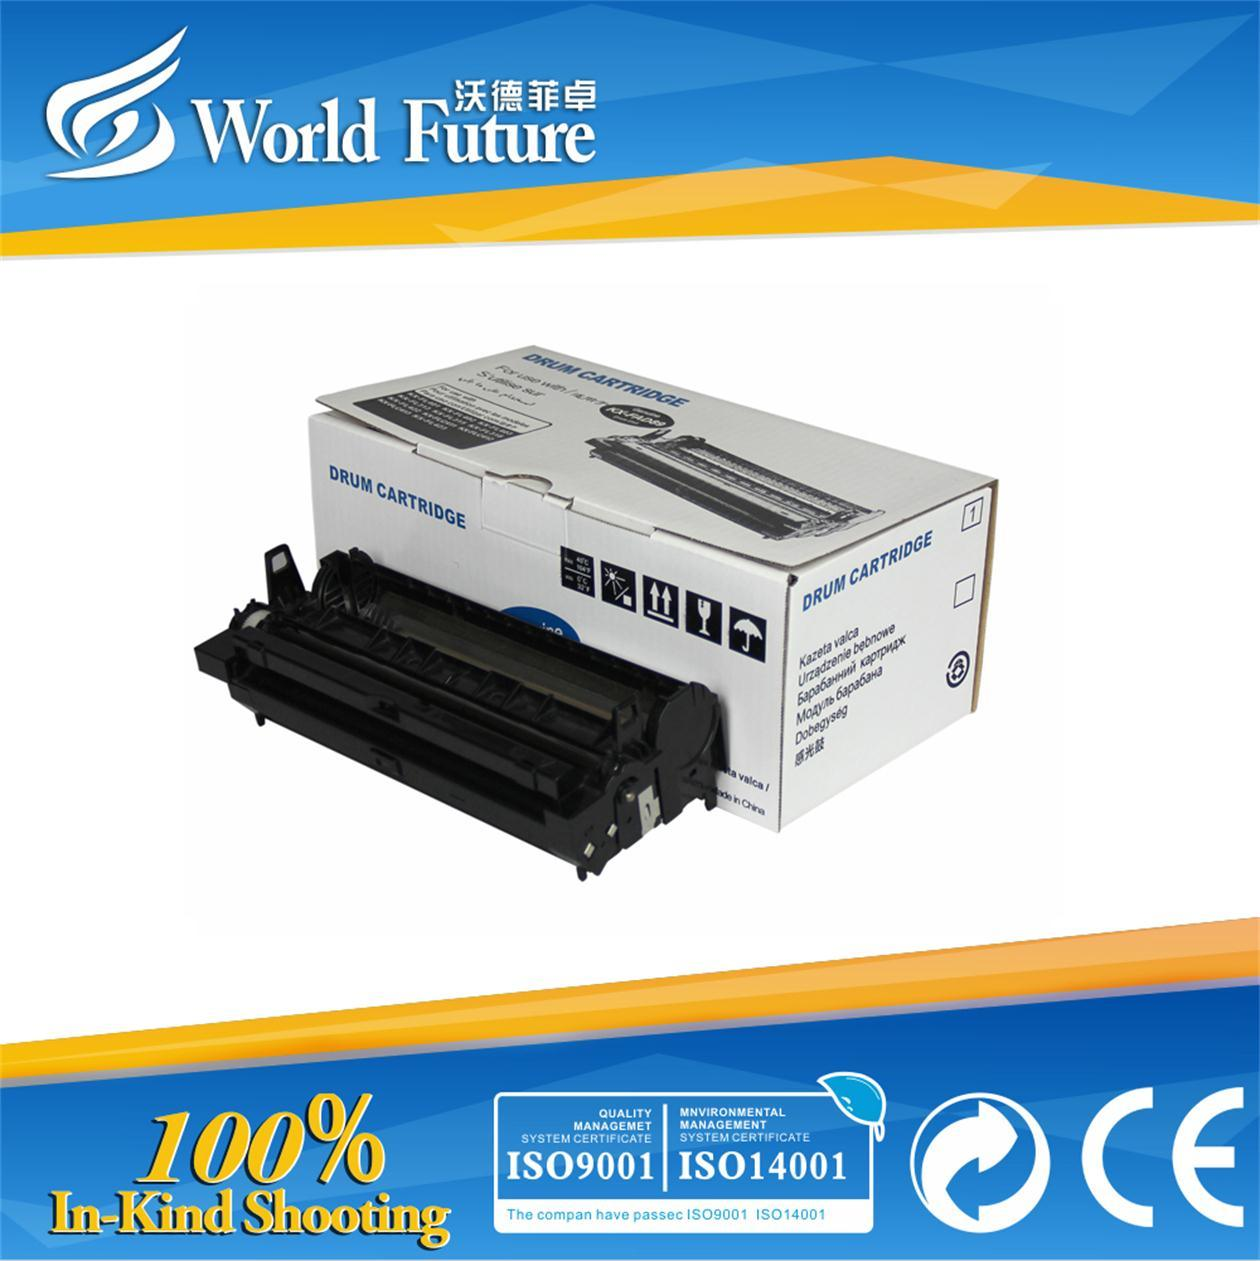 Wholesale Black Laser Printer Toner Cartridge for Compatible Panasonic (KX-FAT89A/E/A7/X) (Drum)